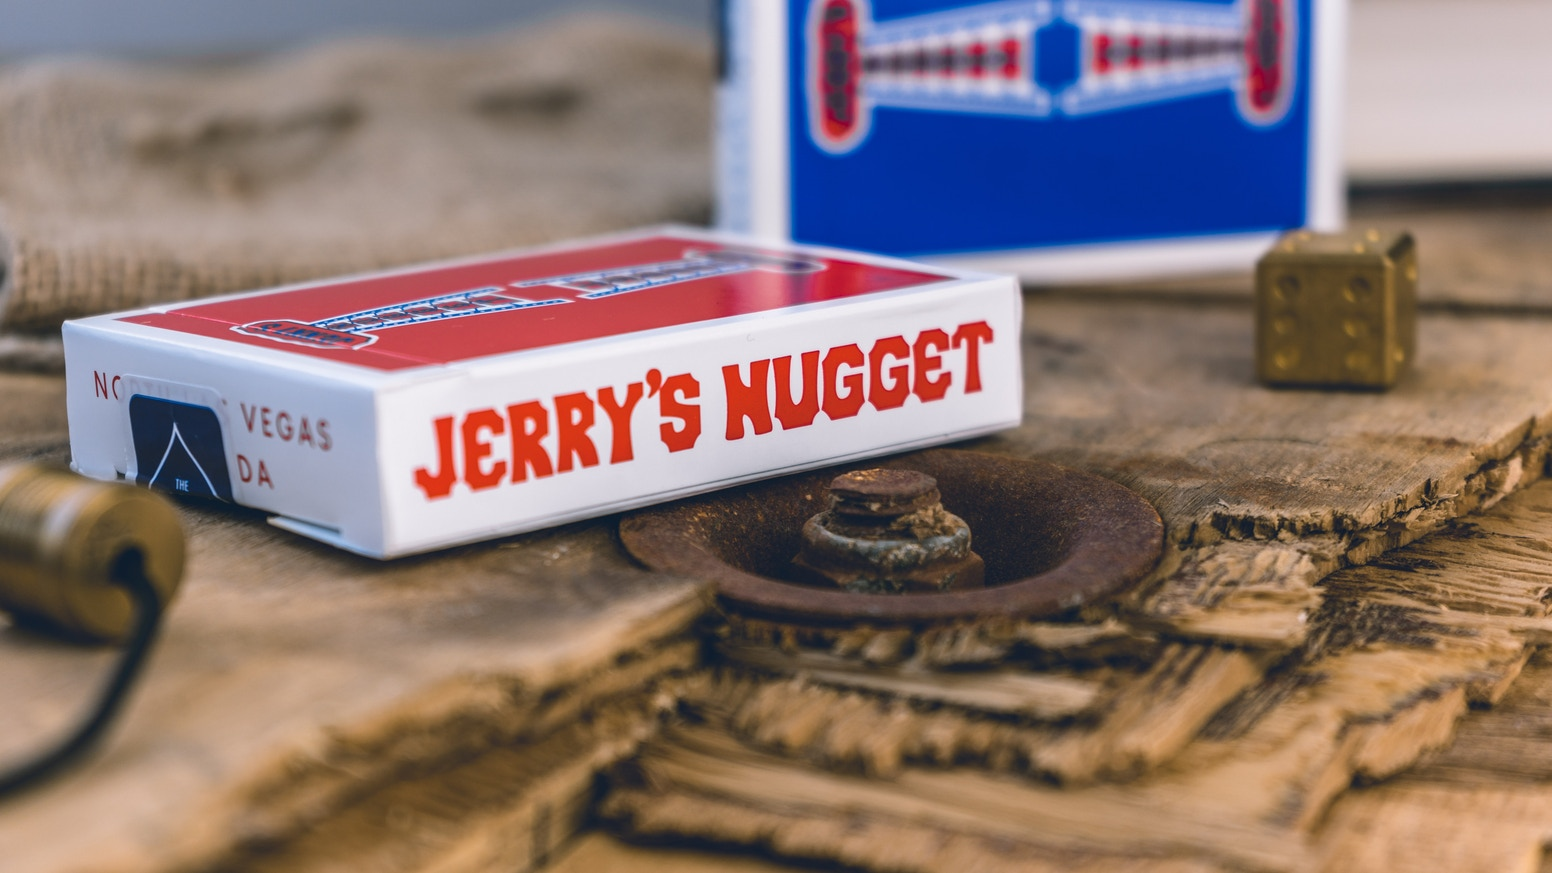 Jerry Nuggets speelkaarten